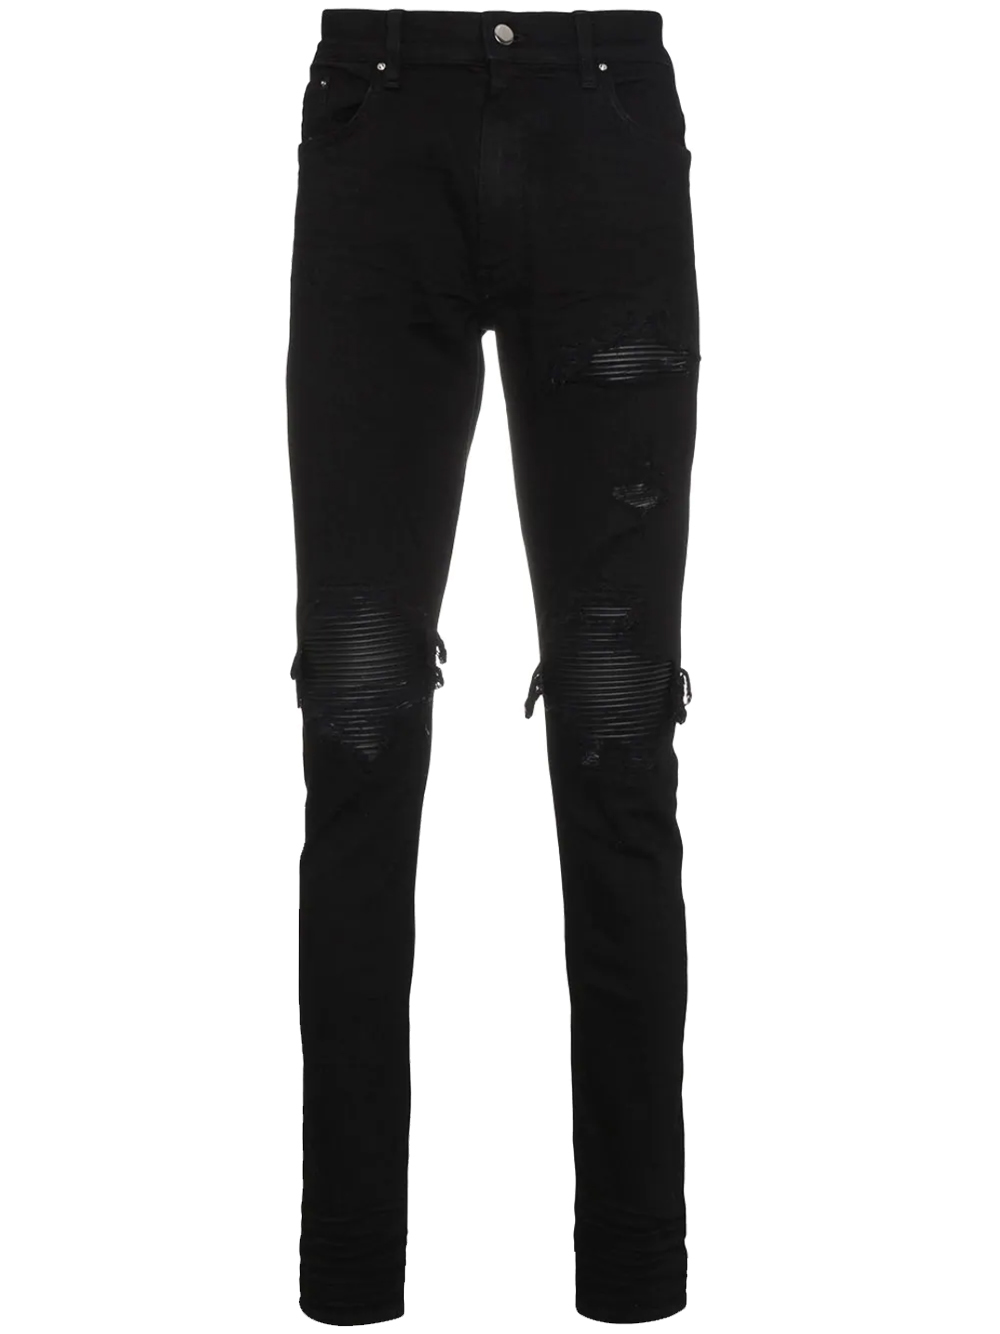 Jean MX1 patch - 1090€